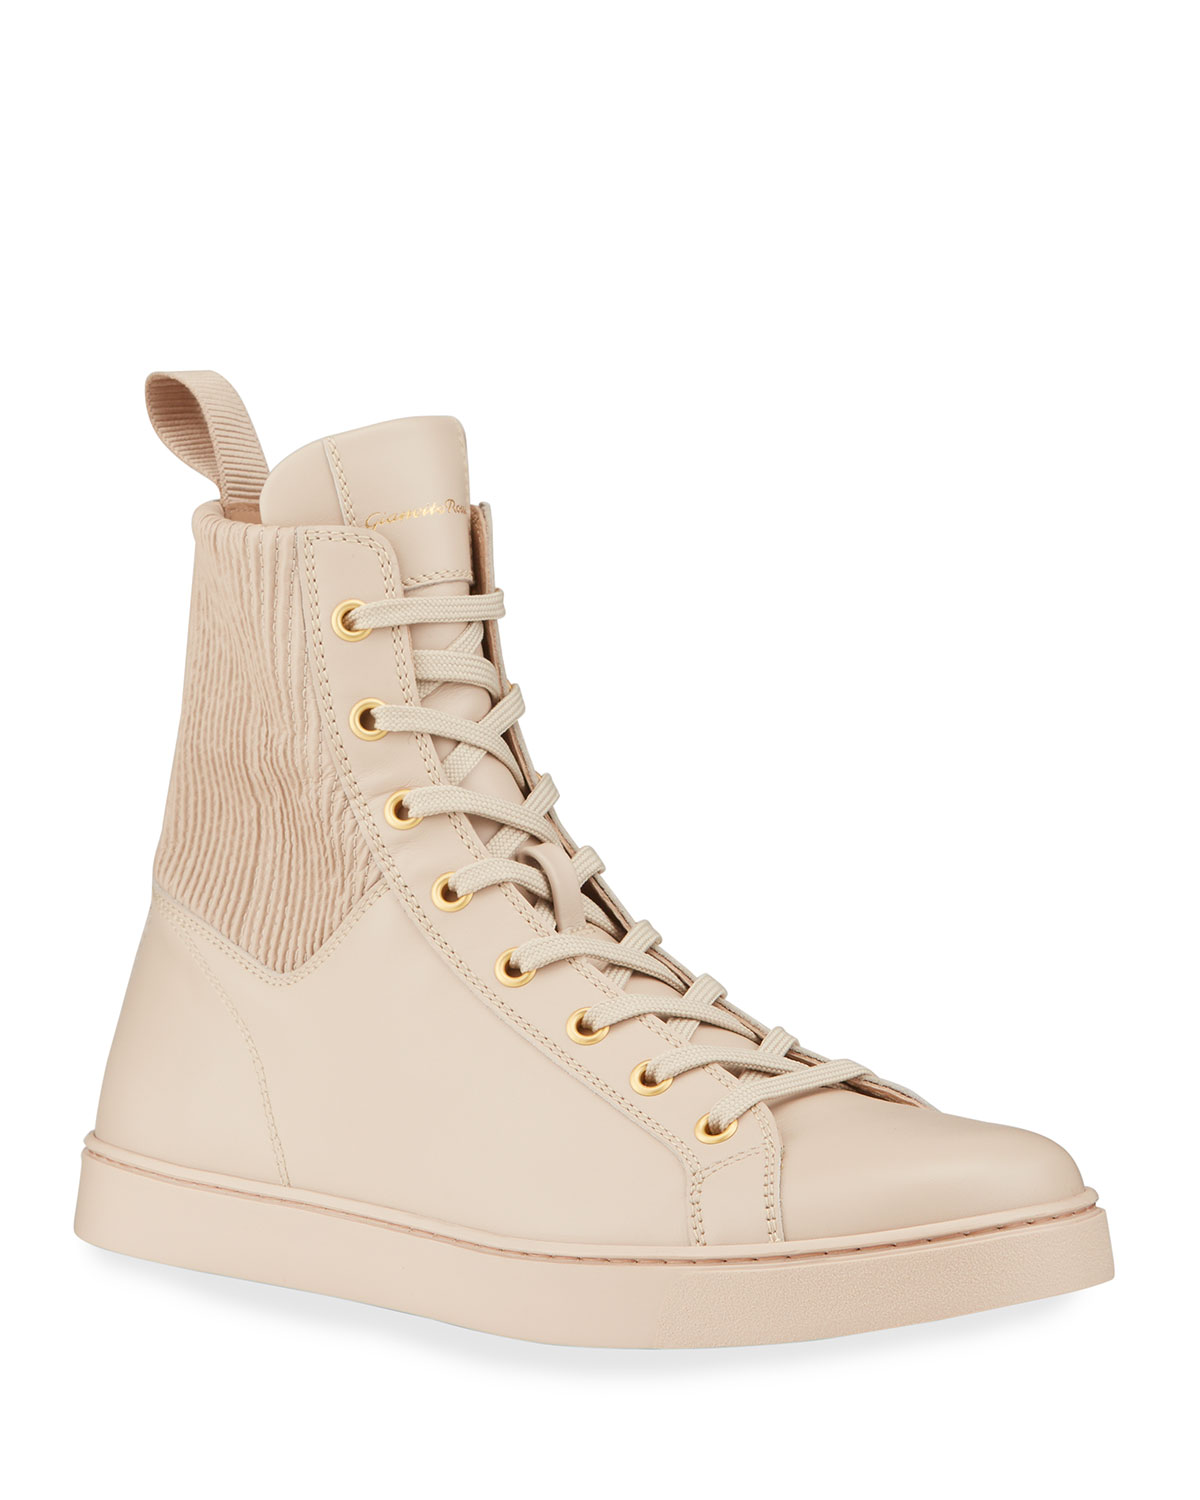 Gianvito Rossi Leathers CALFSKIN HIGH-TOP SNEAKERS